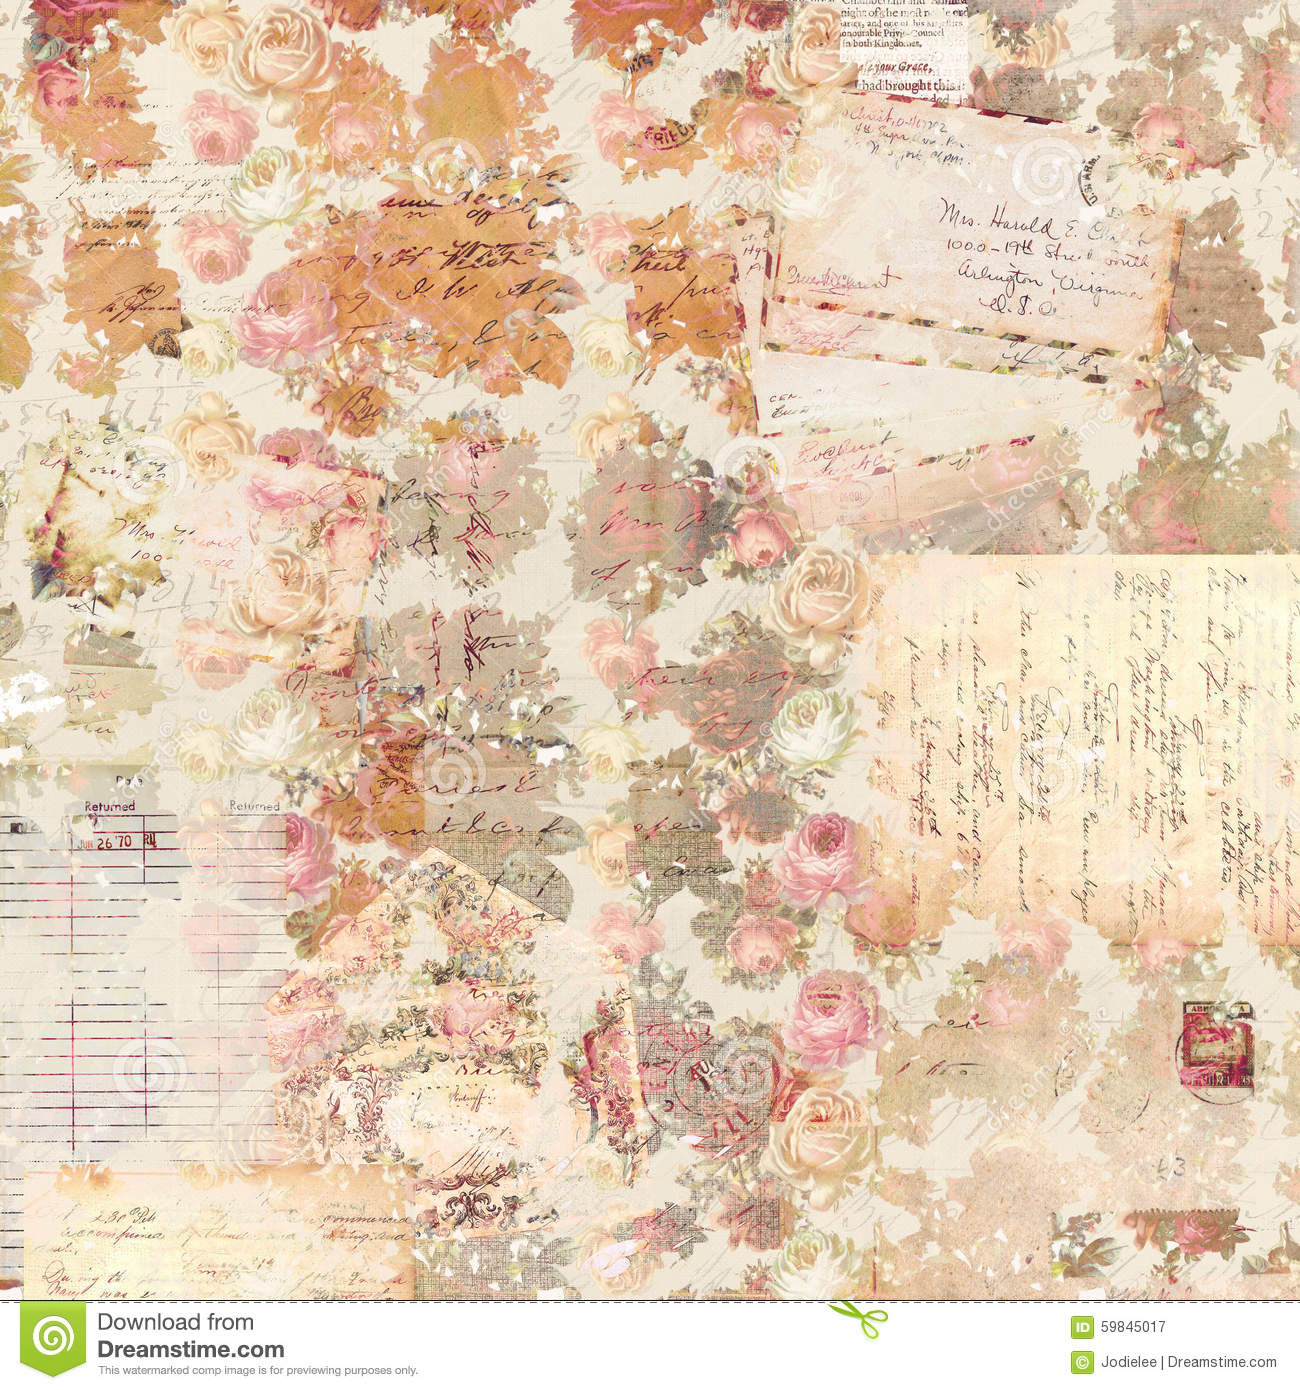 Antique Vintage Roses Patterned Background In Rustic Fall Colors Christmas